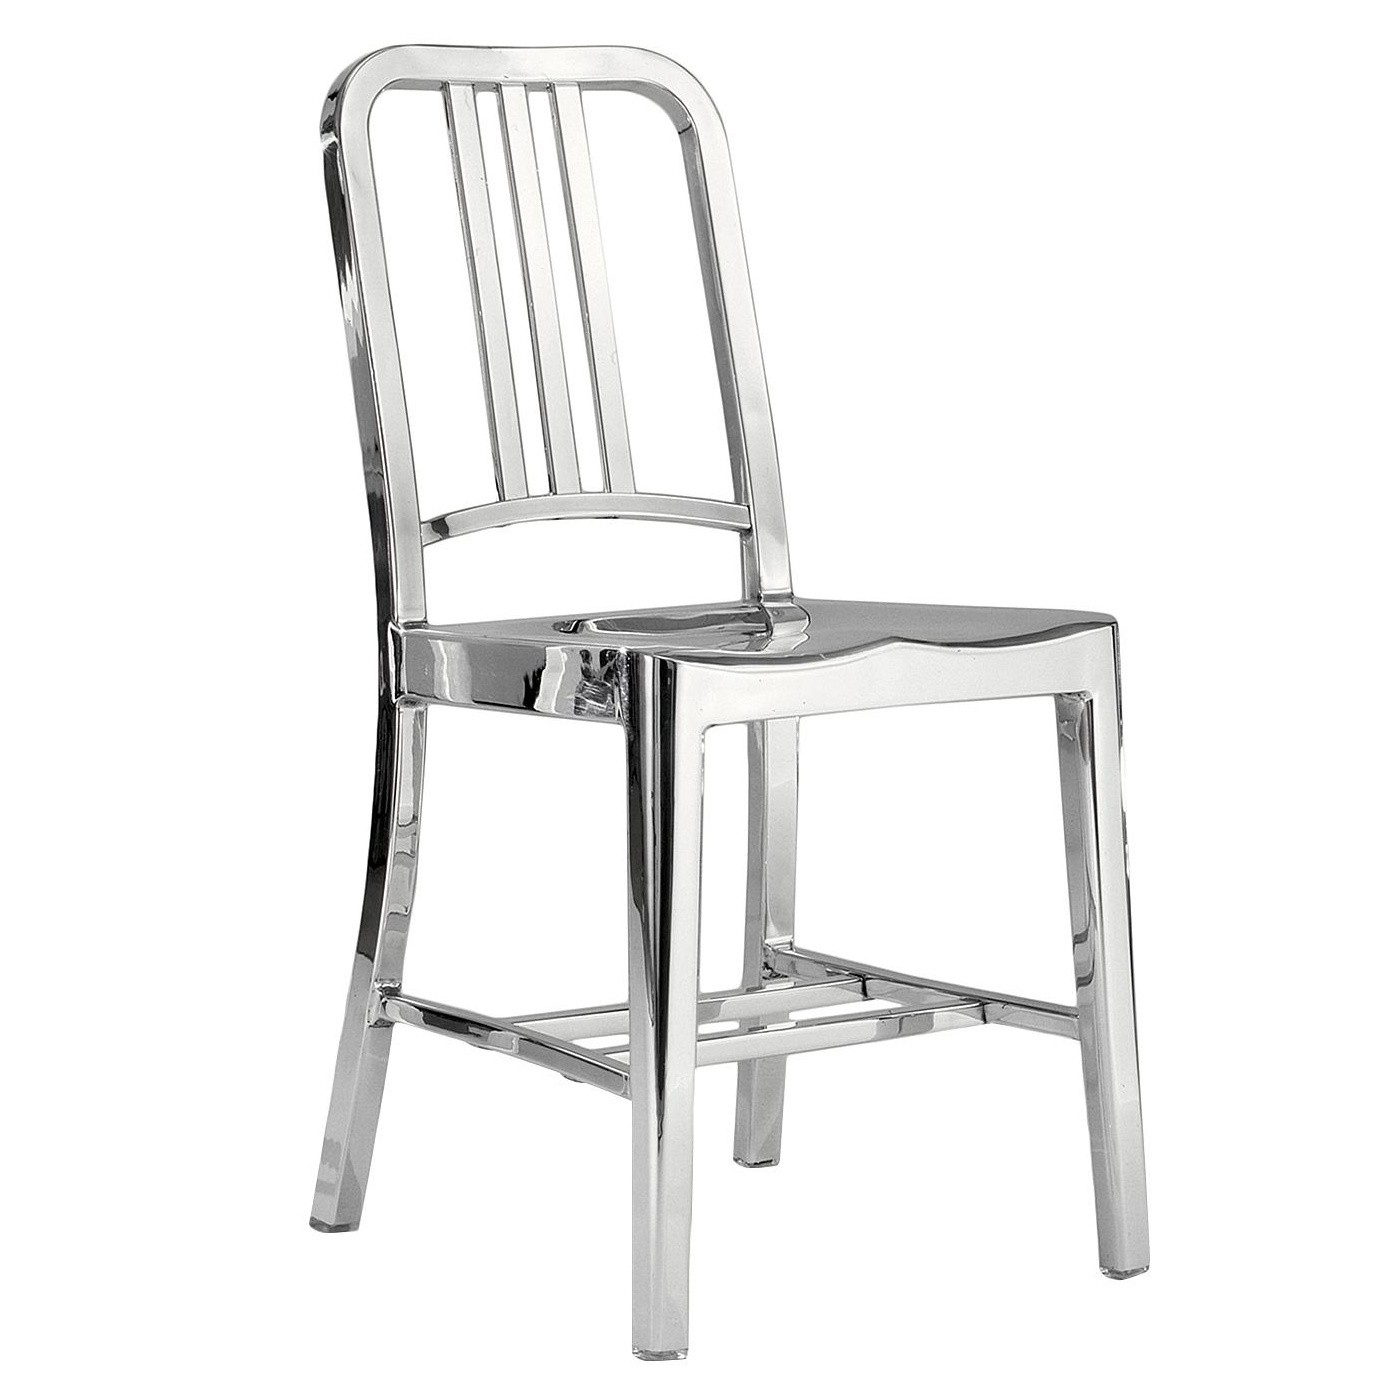 Astounding Navy Chair Caraccident5 Cool Chair Designs And Ideas Caraccident5Info